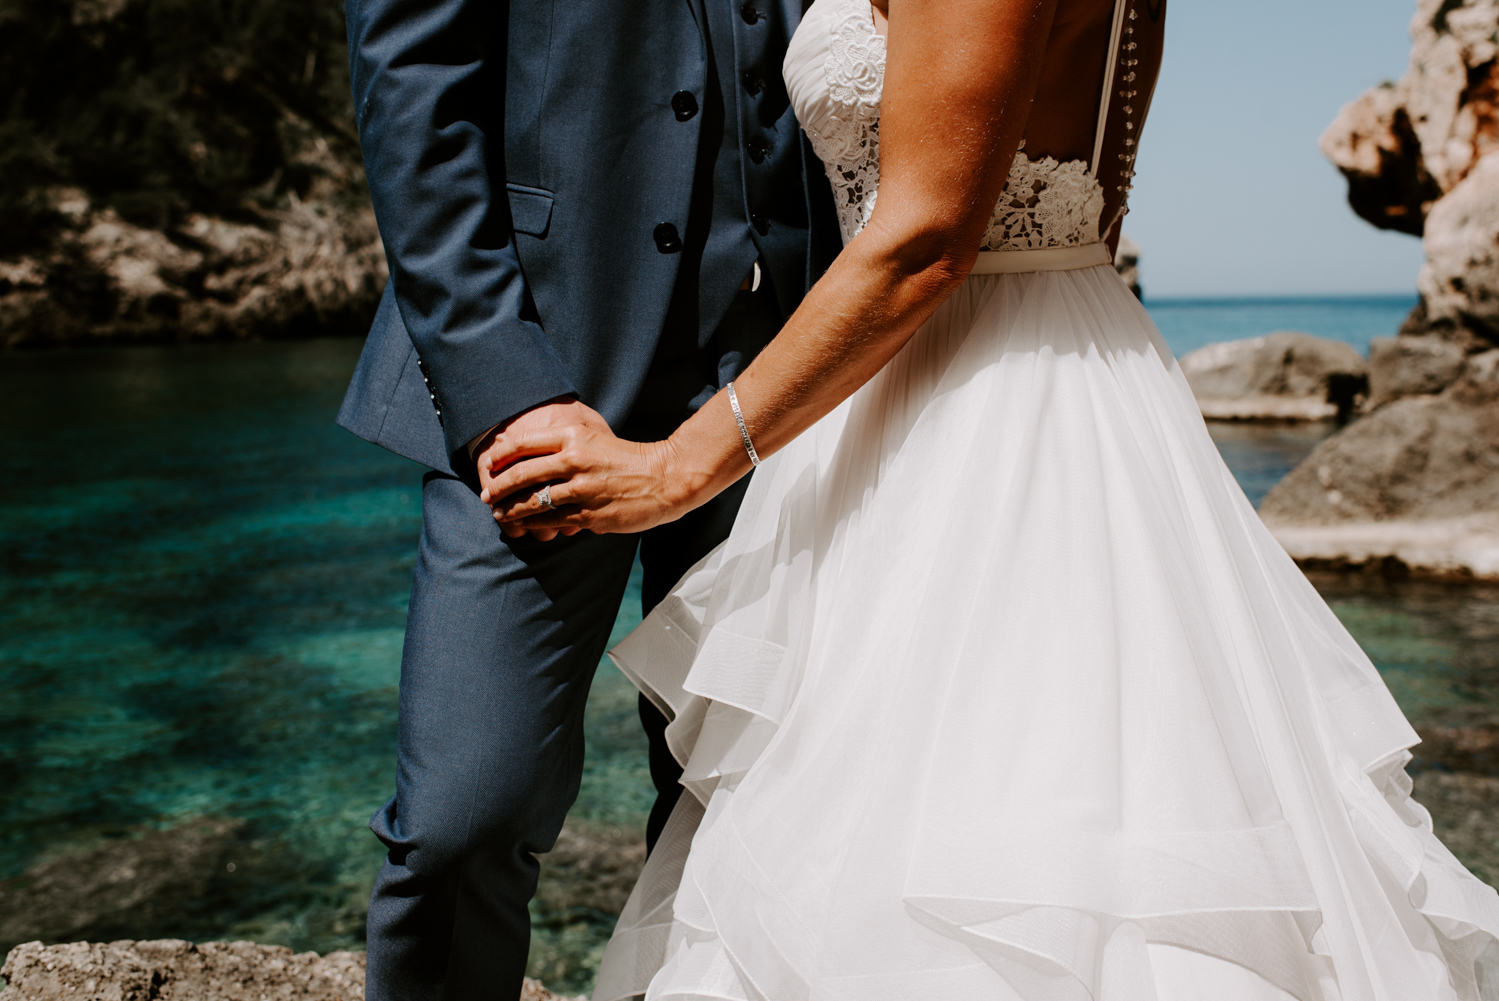 Son-Marroig-Deya-Mallorca-Spain-Elopement-Wedding-13